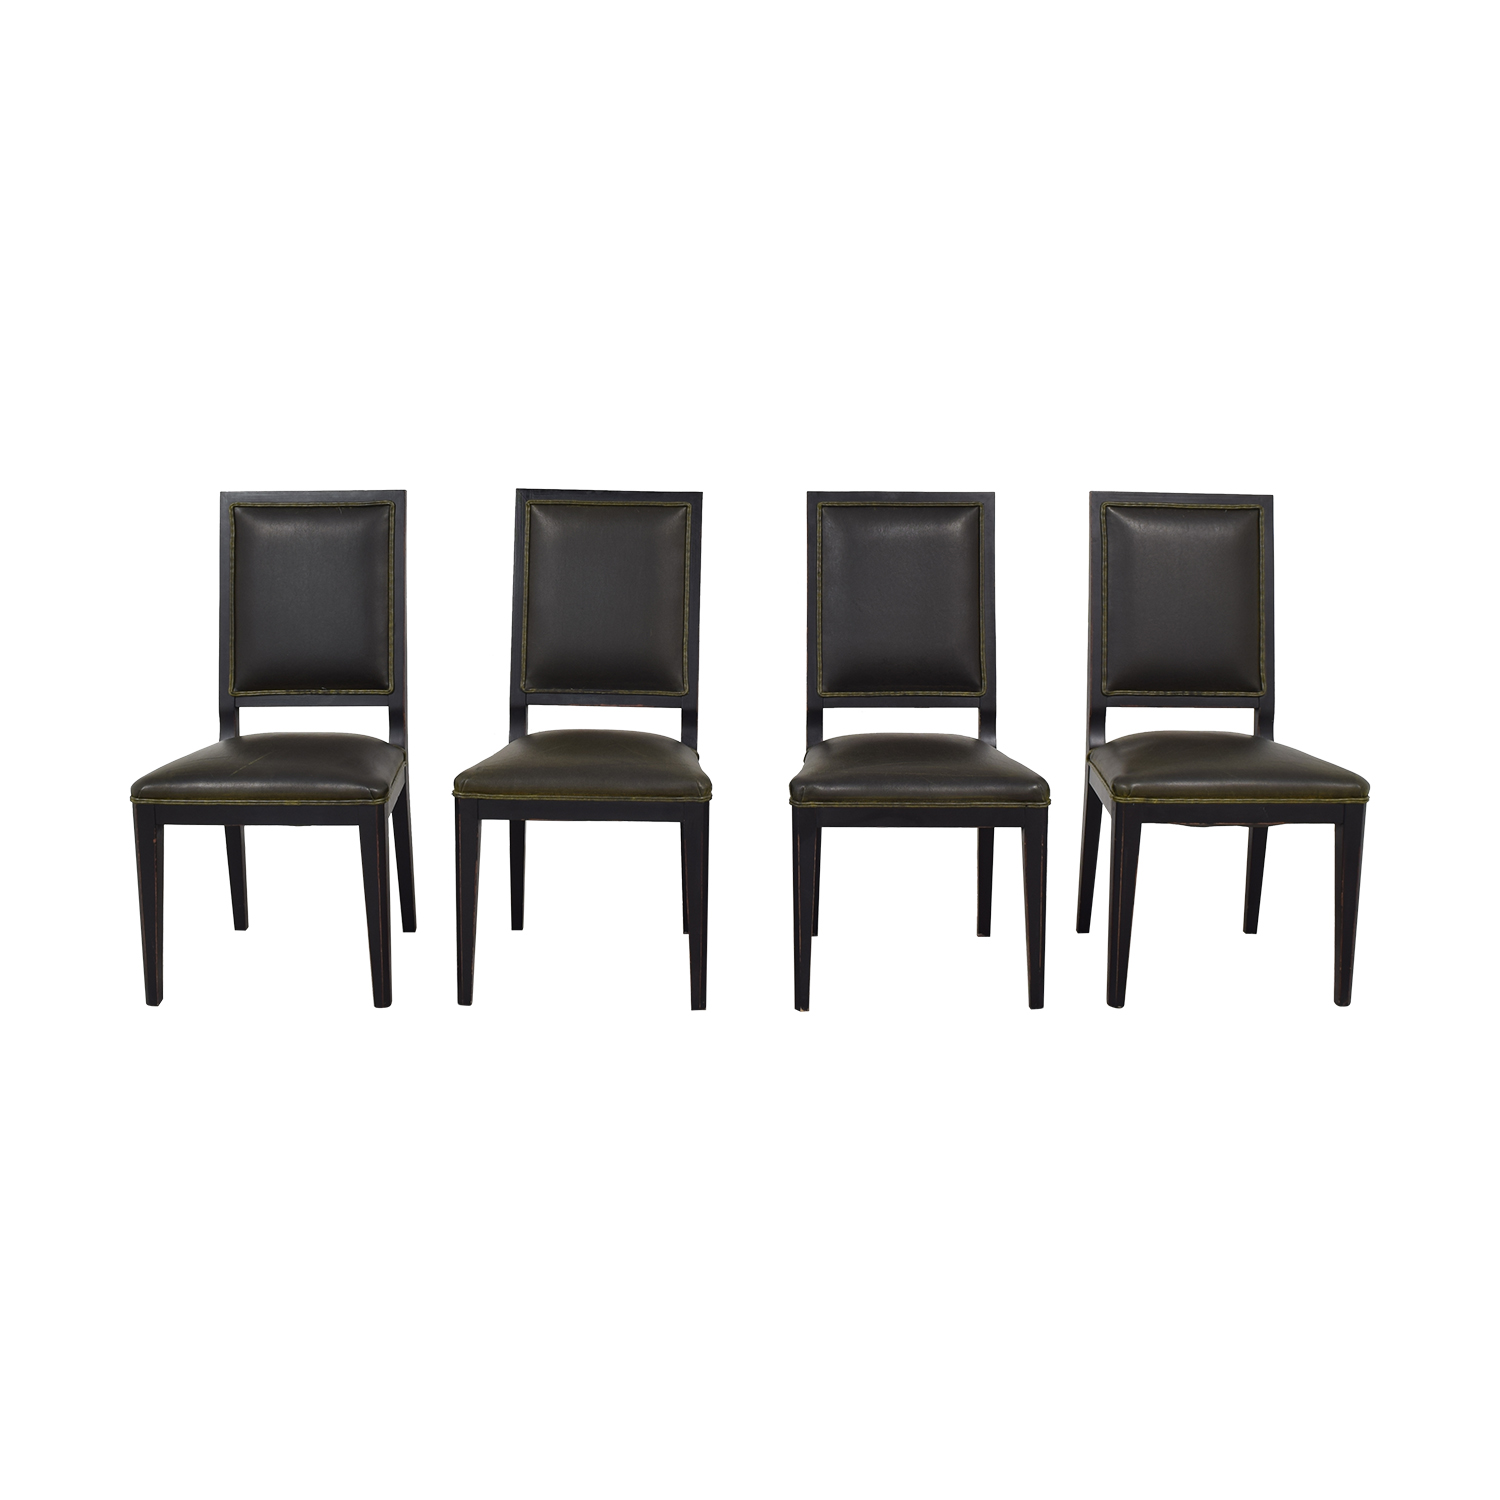 buy Buying & Design Dining Chairs Buying & Design Chairs